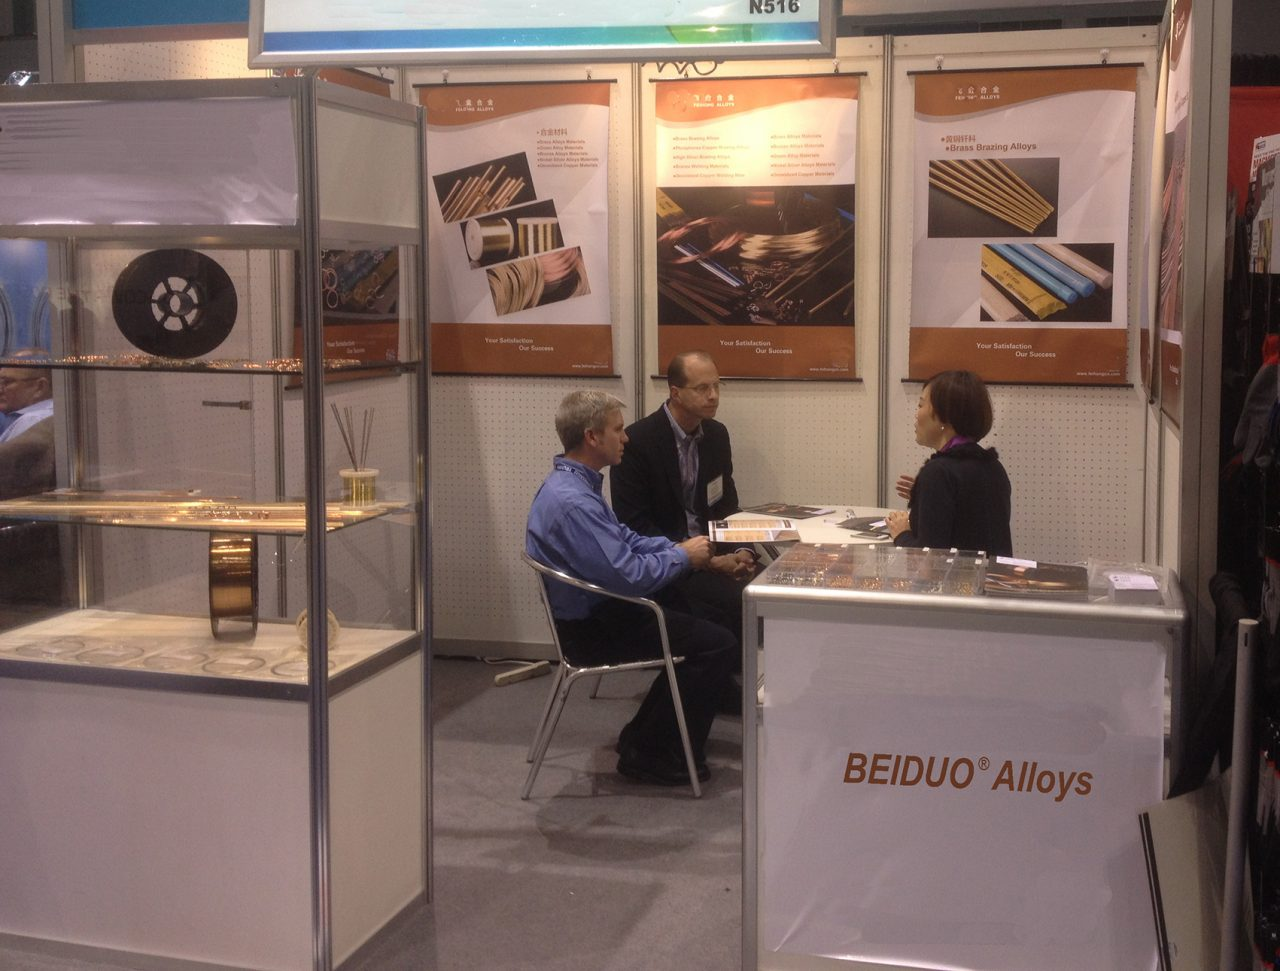 Beiduo Alloys in Chicago